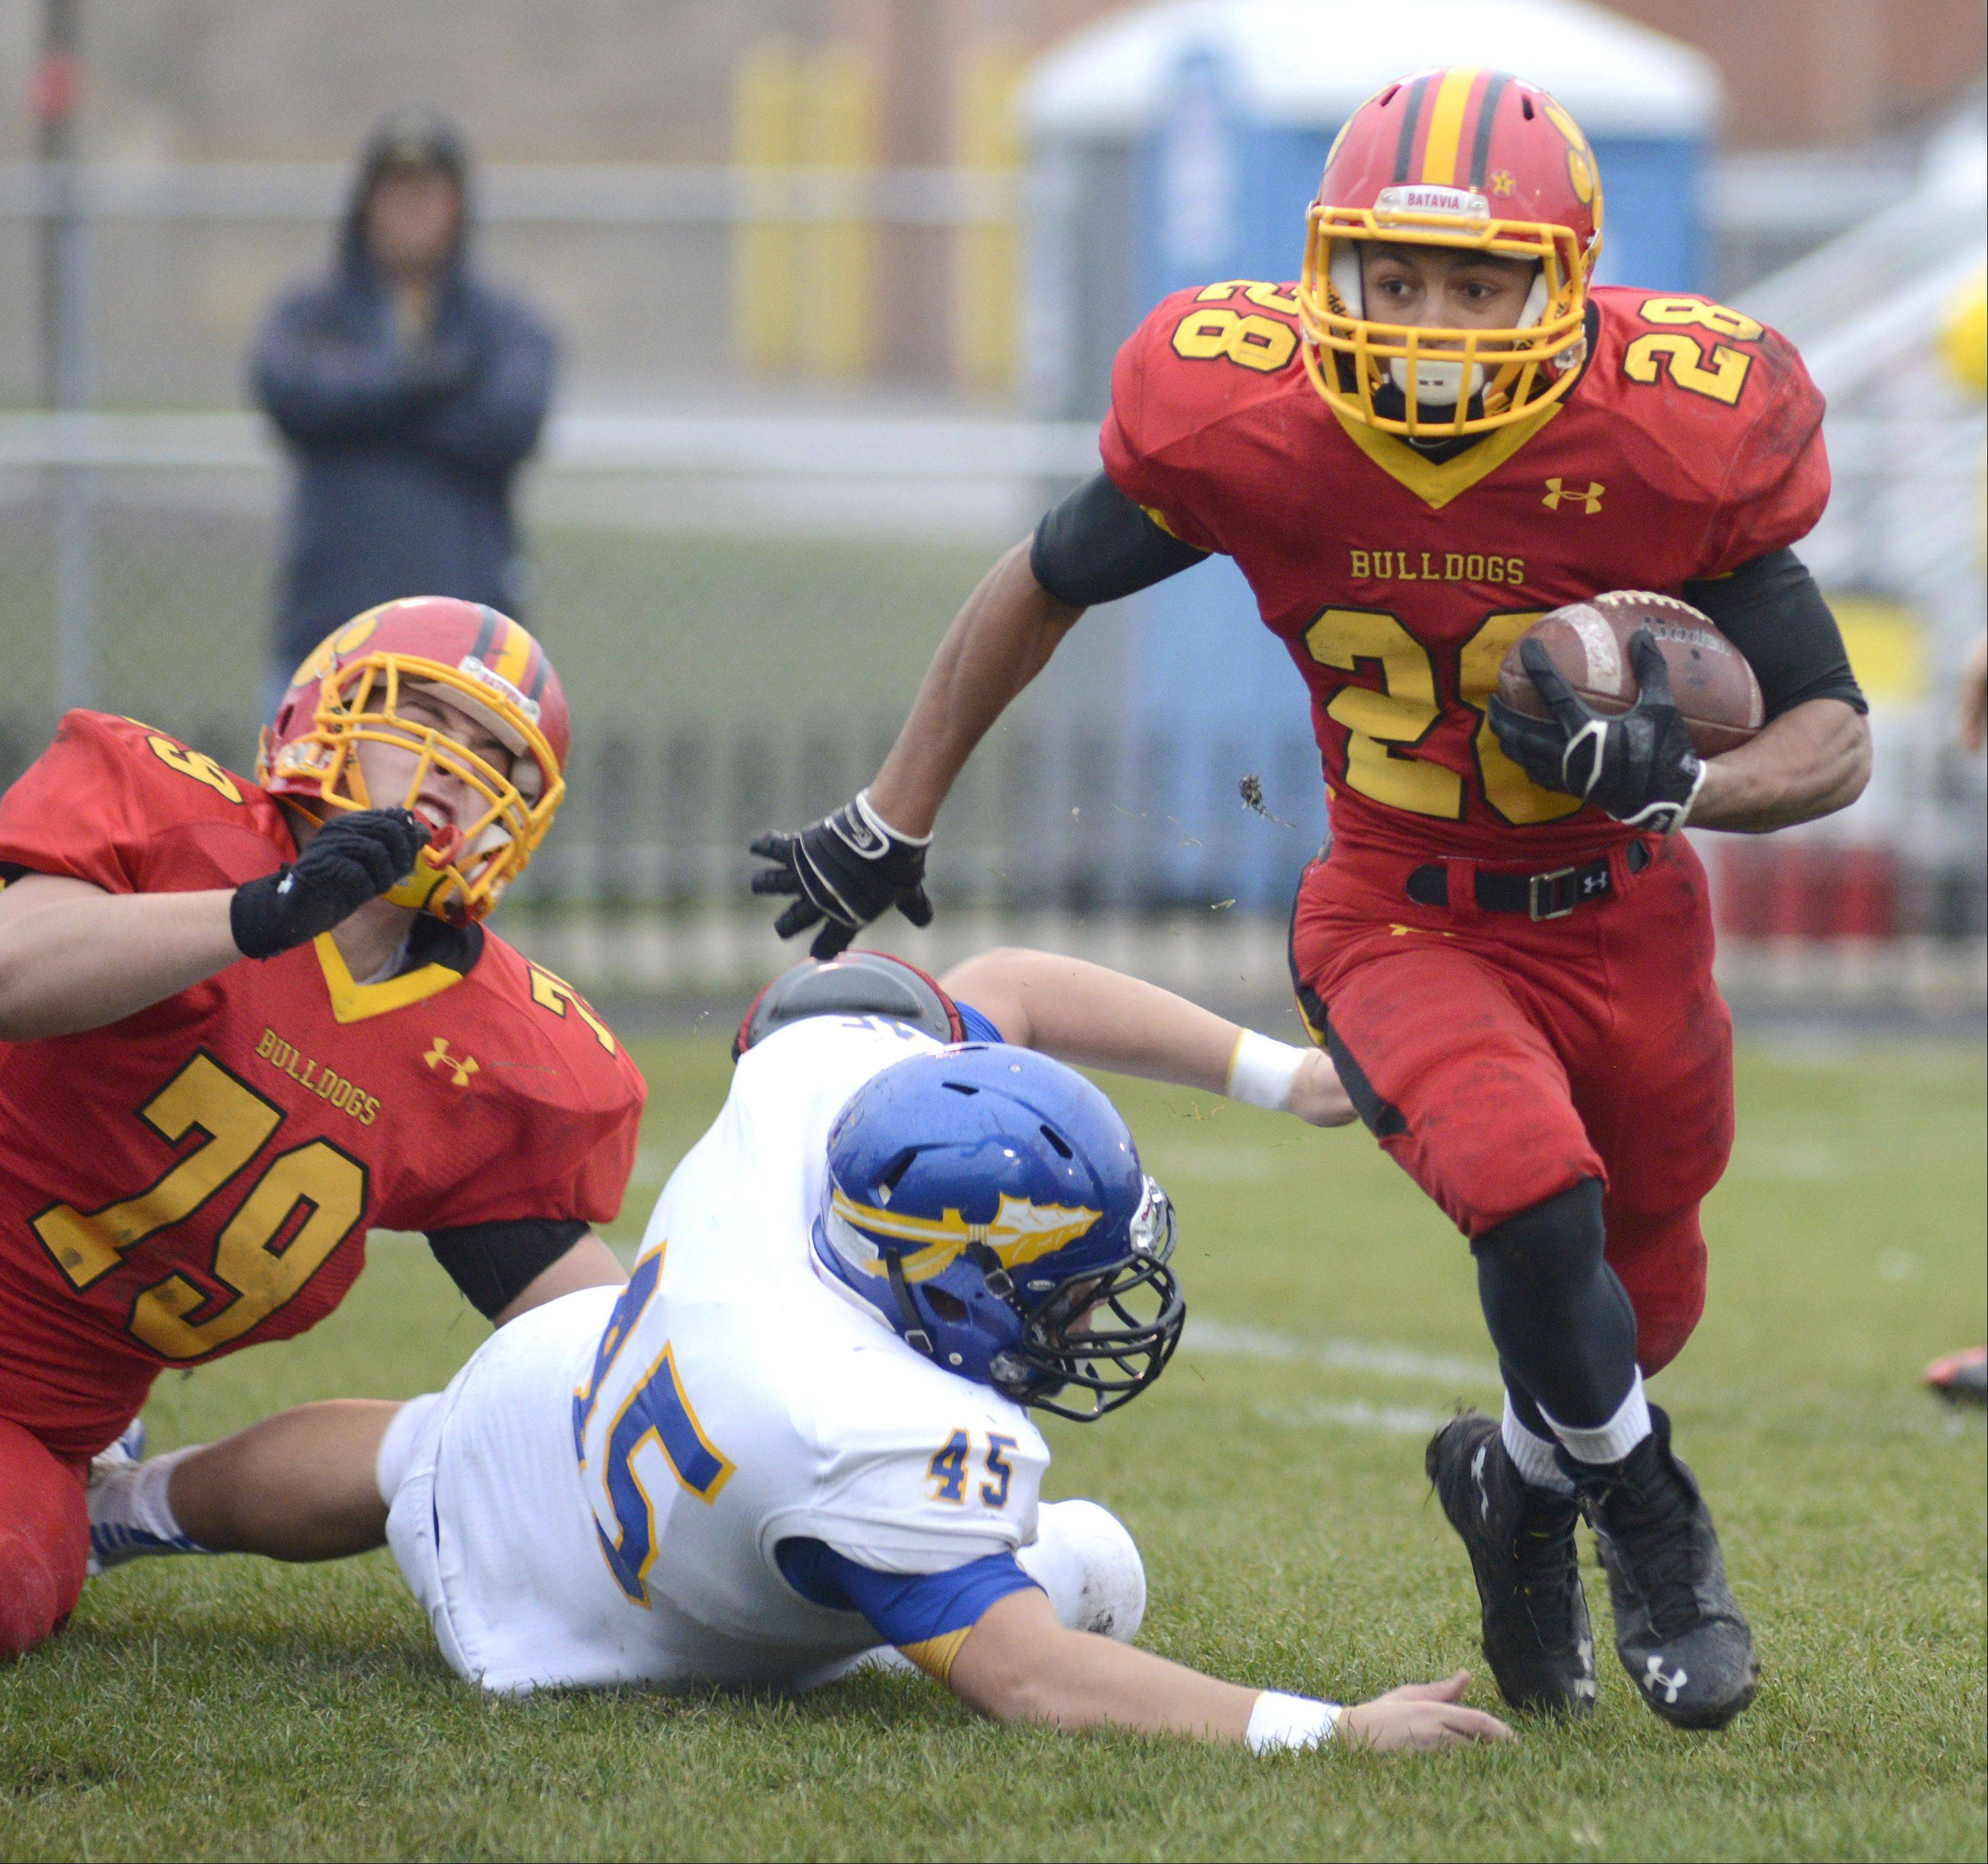 Laura Stoecker/lstoecker@dailyherald.com Batavia's Anthony Scaccia sprints from Lake Forest's John Cirame as teammate Max Heidgen takes him down in the first quarter of the Class 6A quarterfinal on Saturday, November 16.